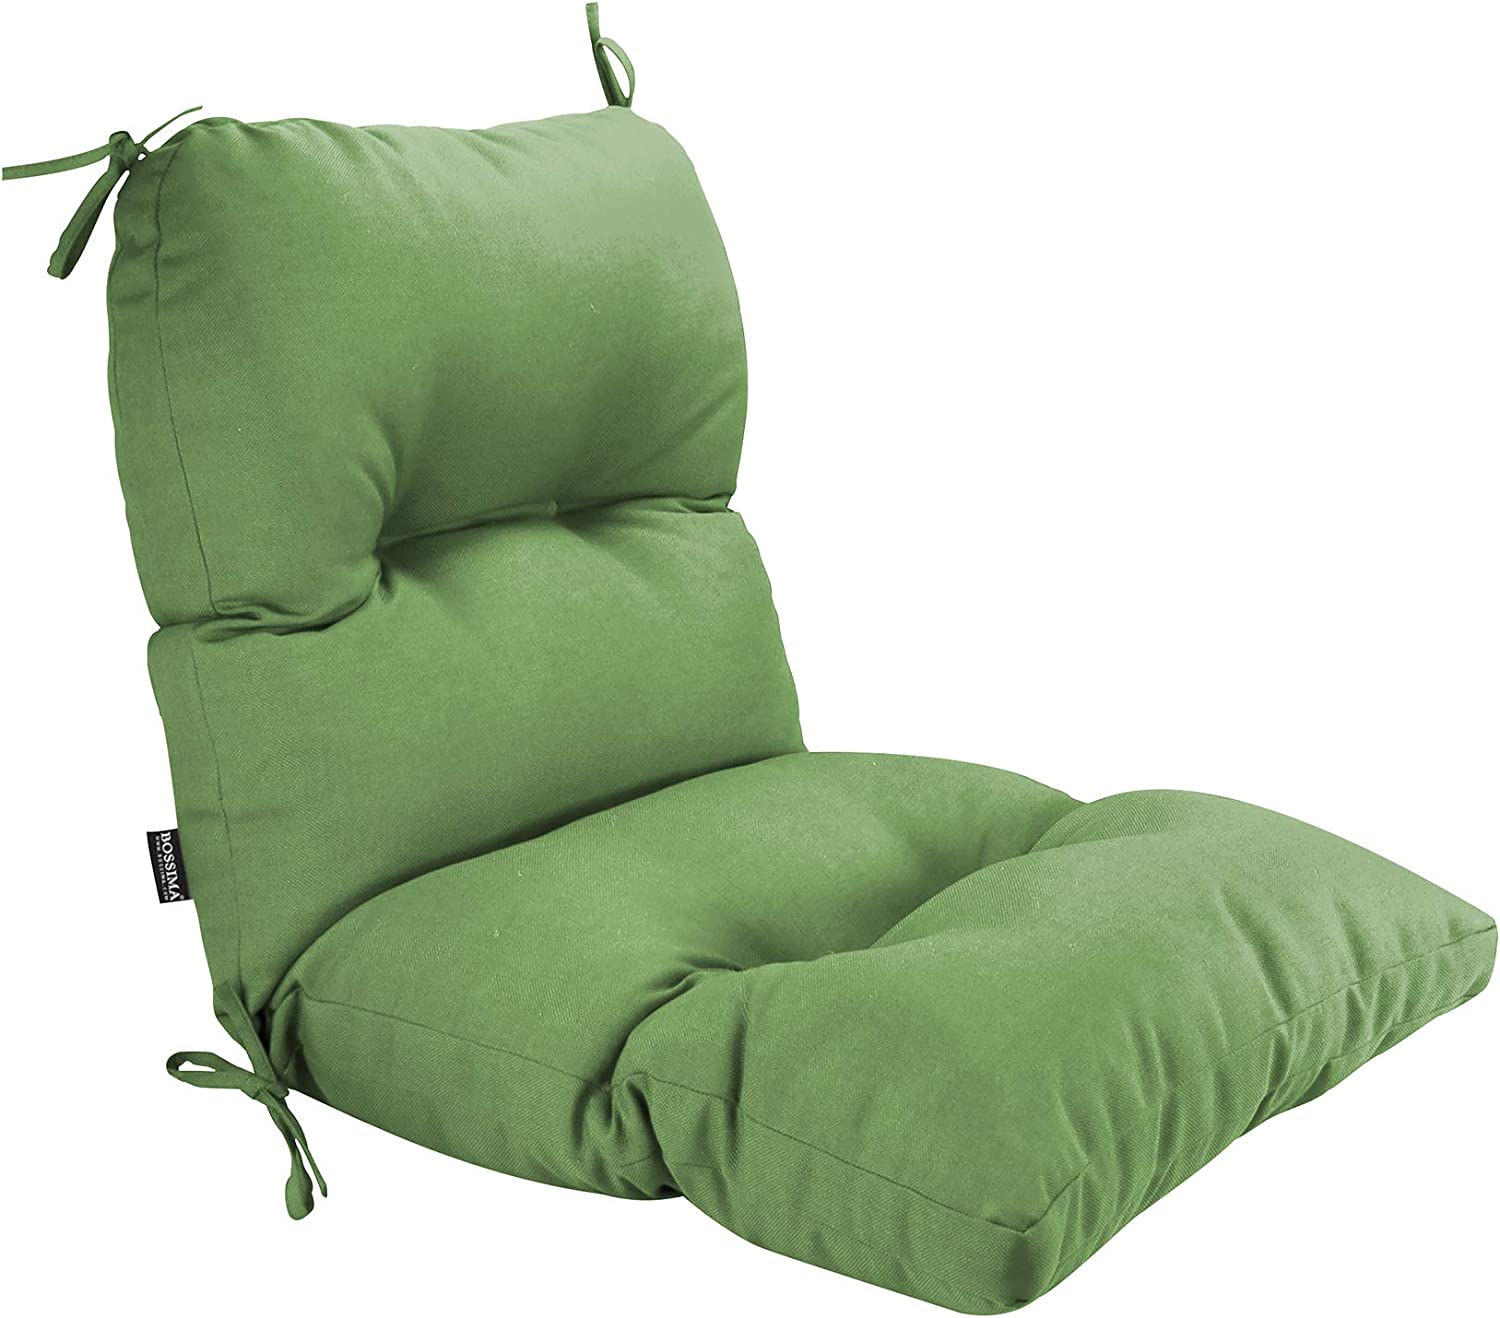 BOSSIMA Outdoor Indoor High Back Chair Tufted Cushions Comfort Replacement Patio Seating Cushions Deep Green